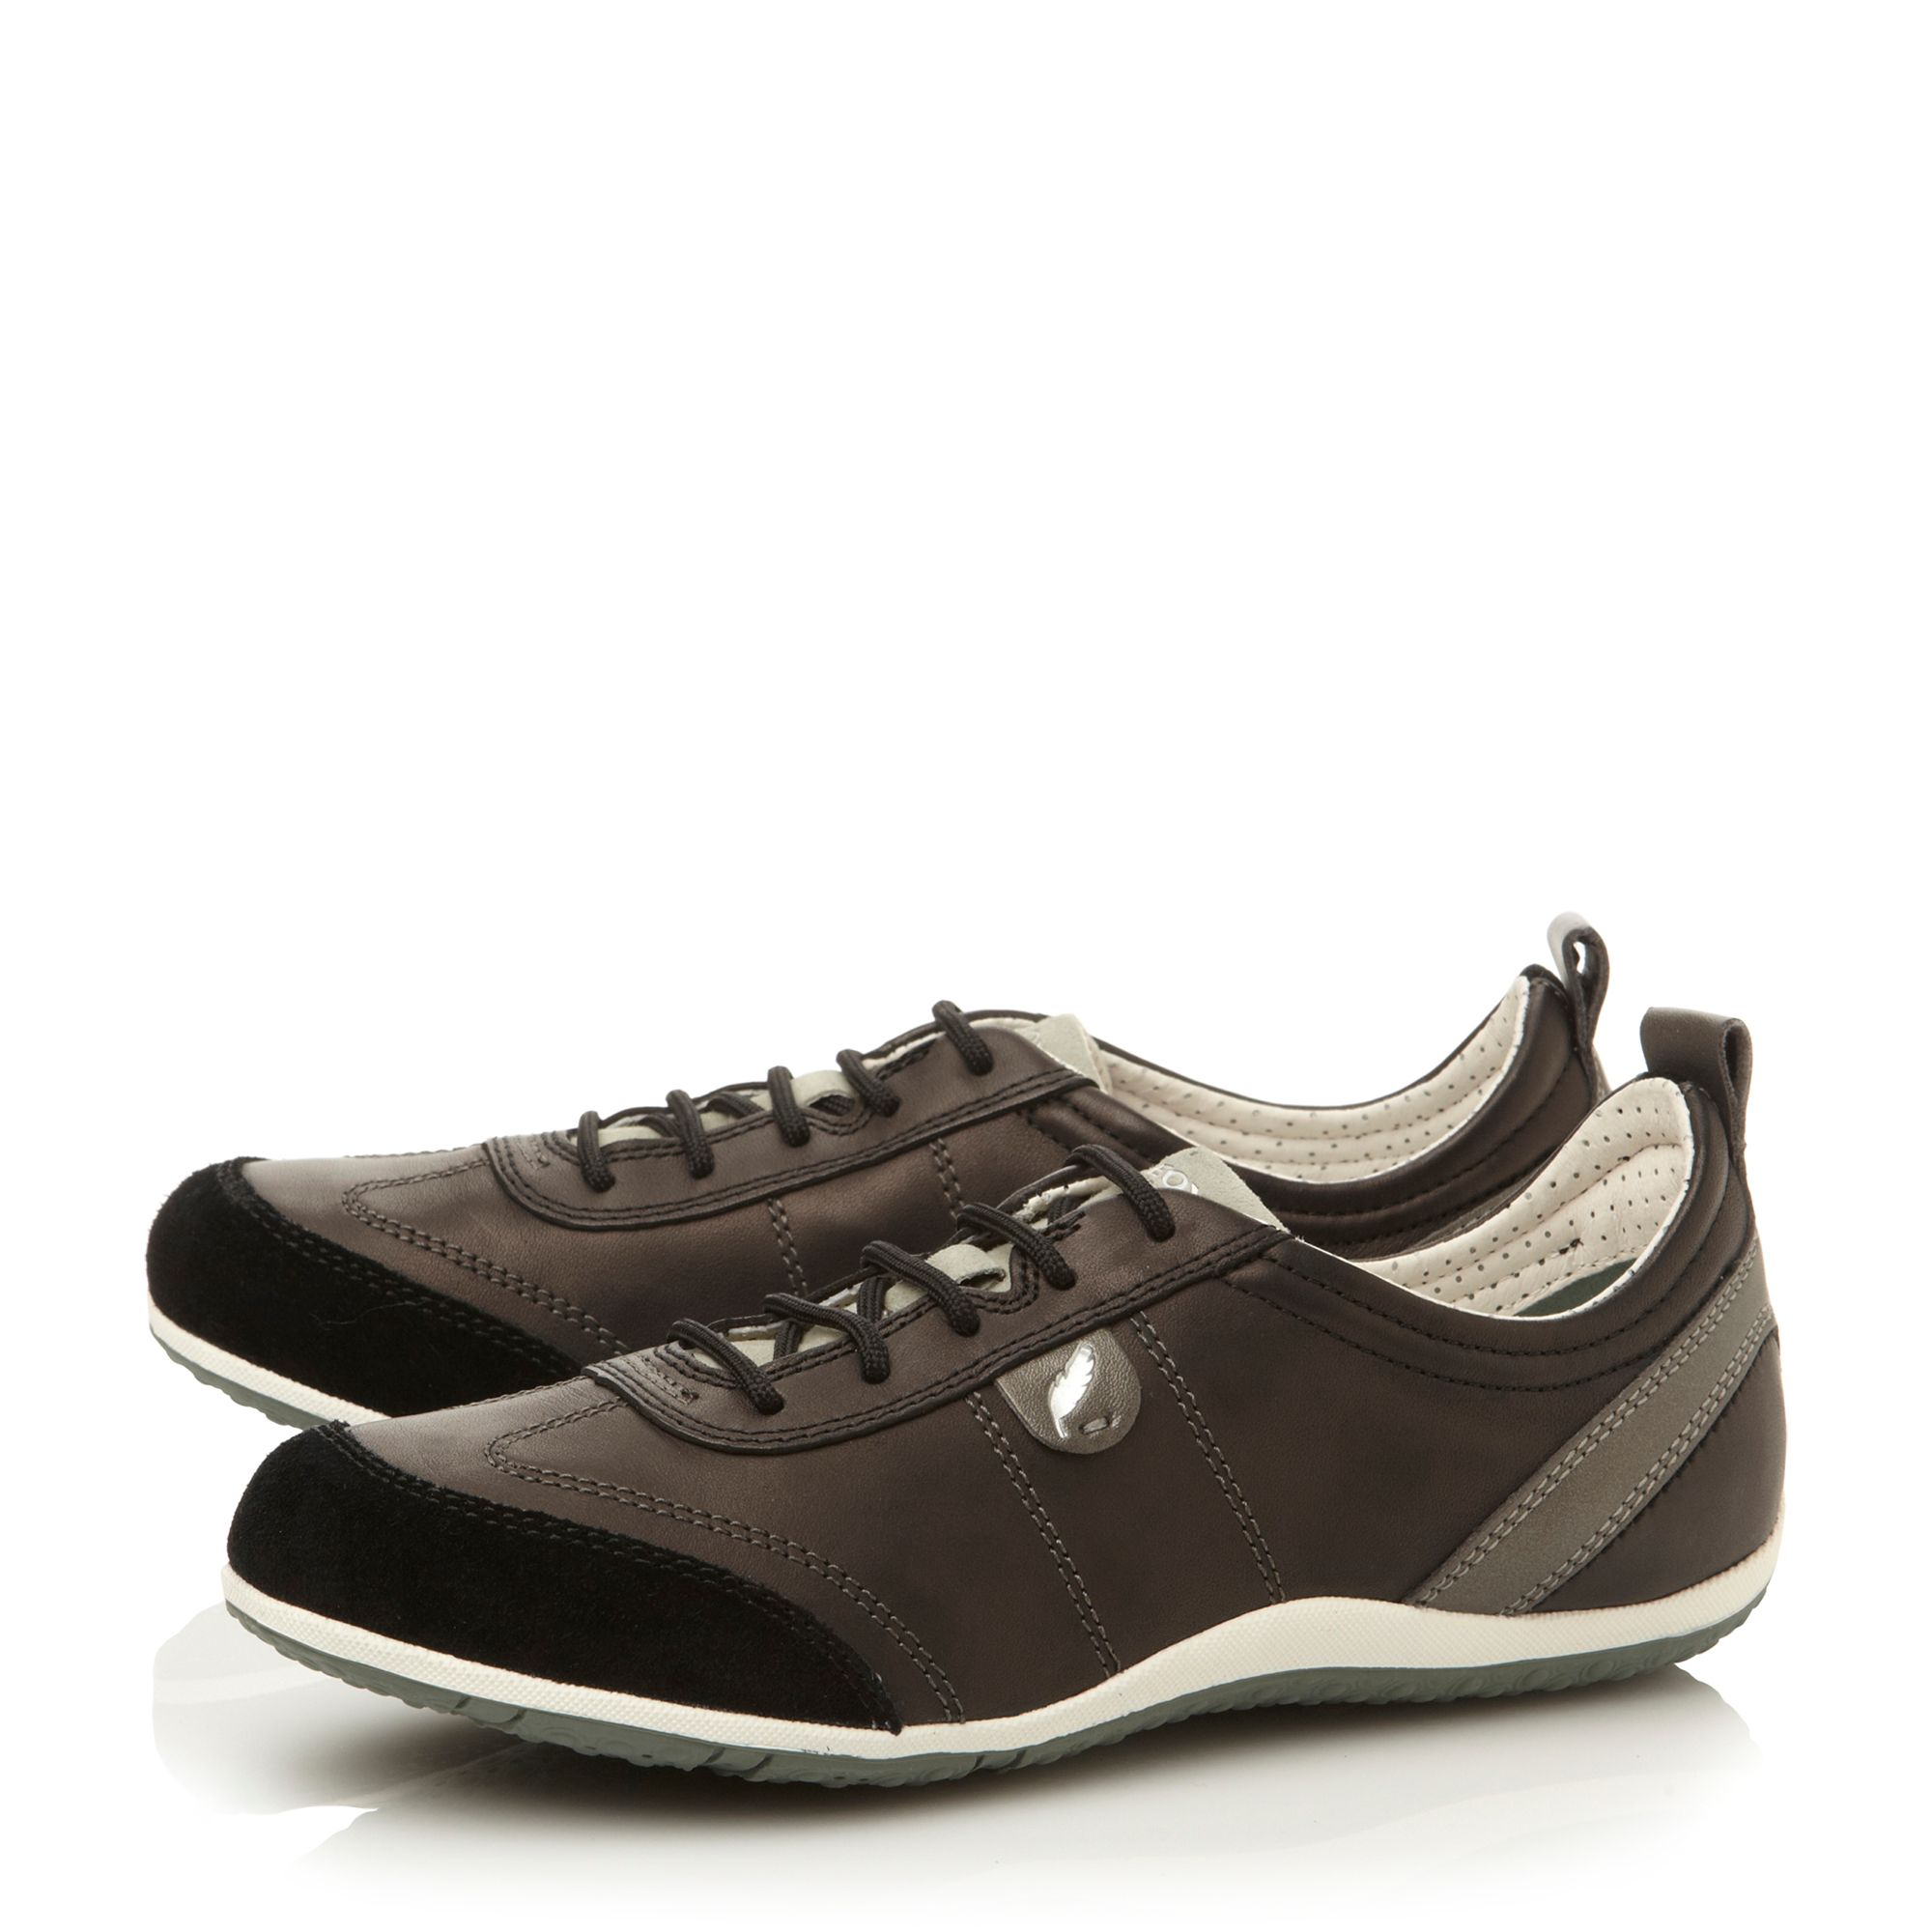 Vega lace up leather flat round sports shoes